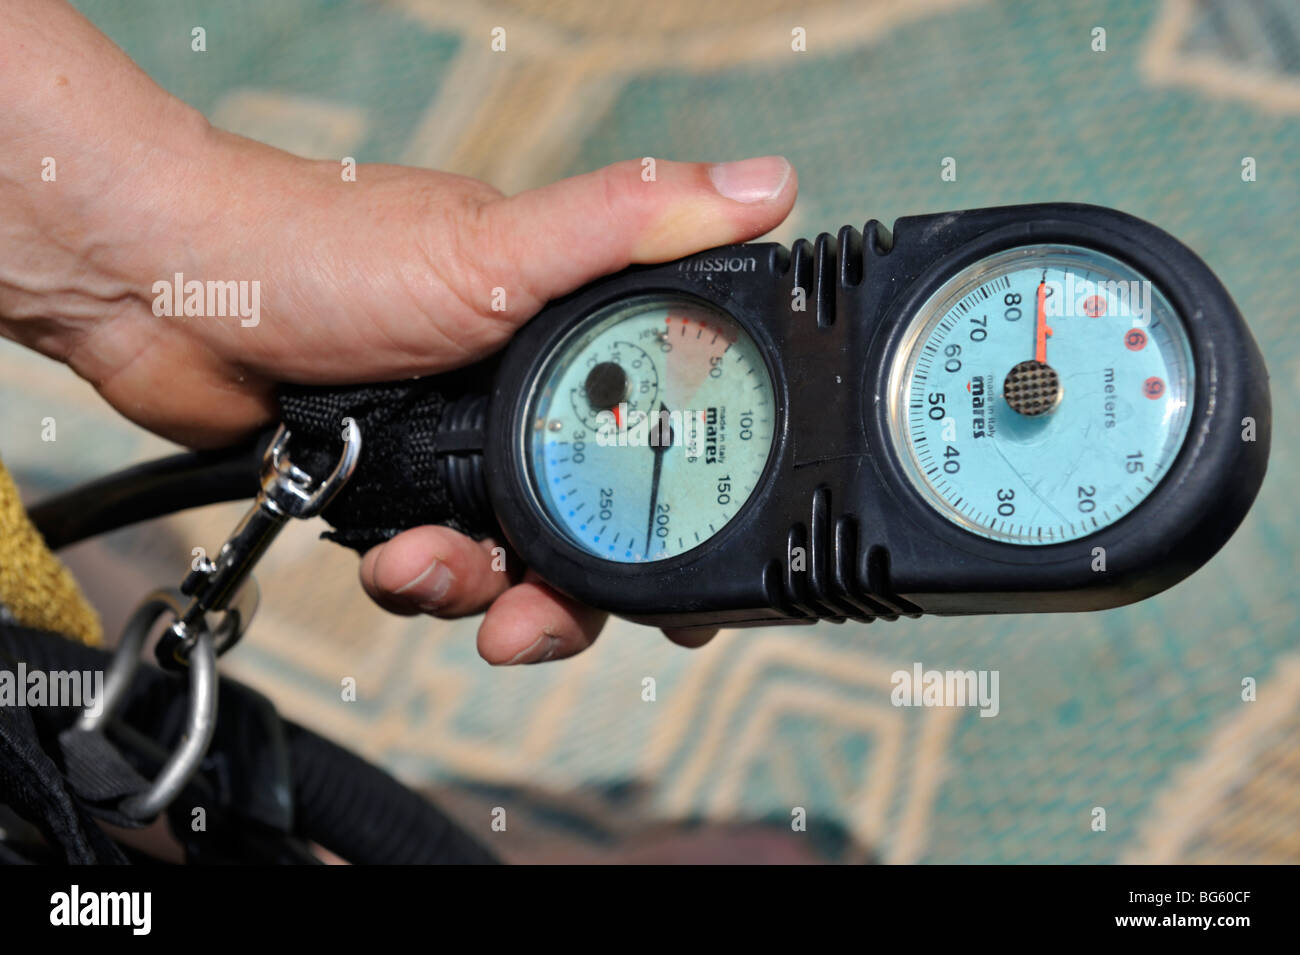 Hand holding scuba diving console with pressure and depth gauge in it - Stock Image